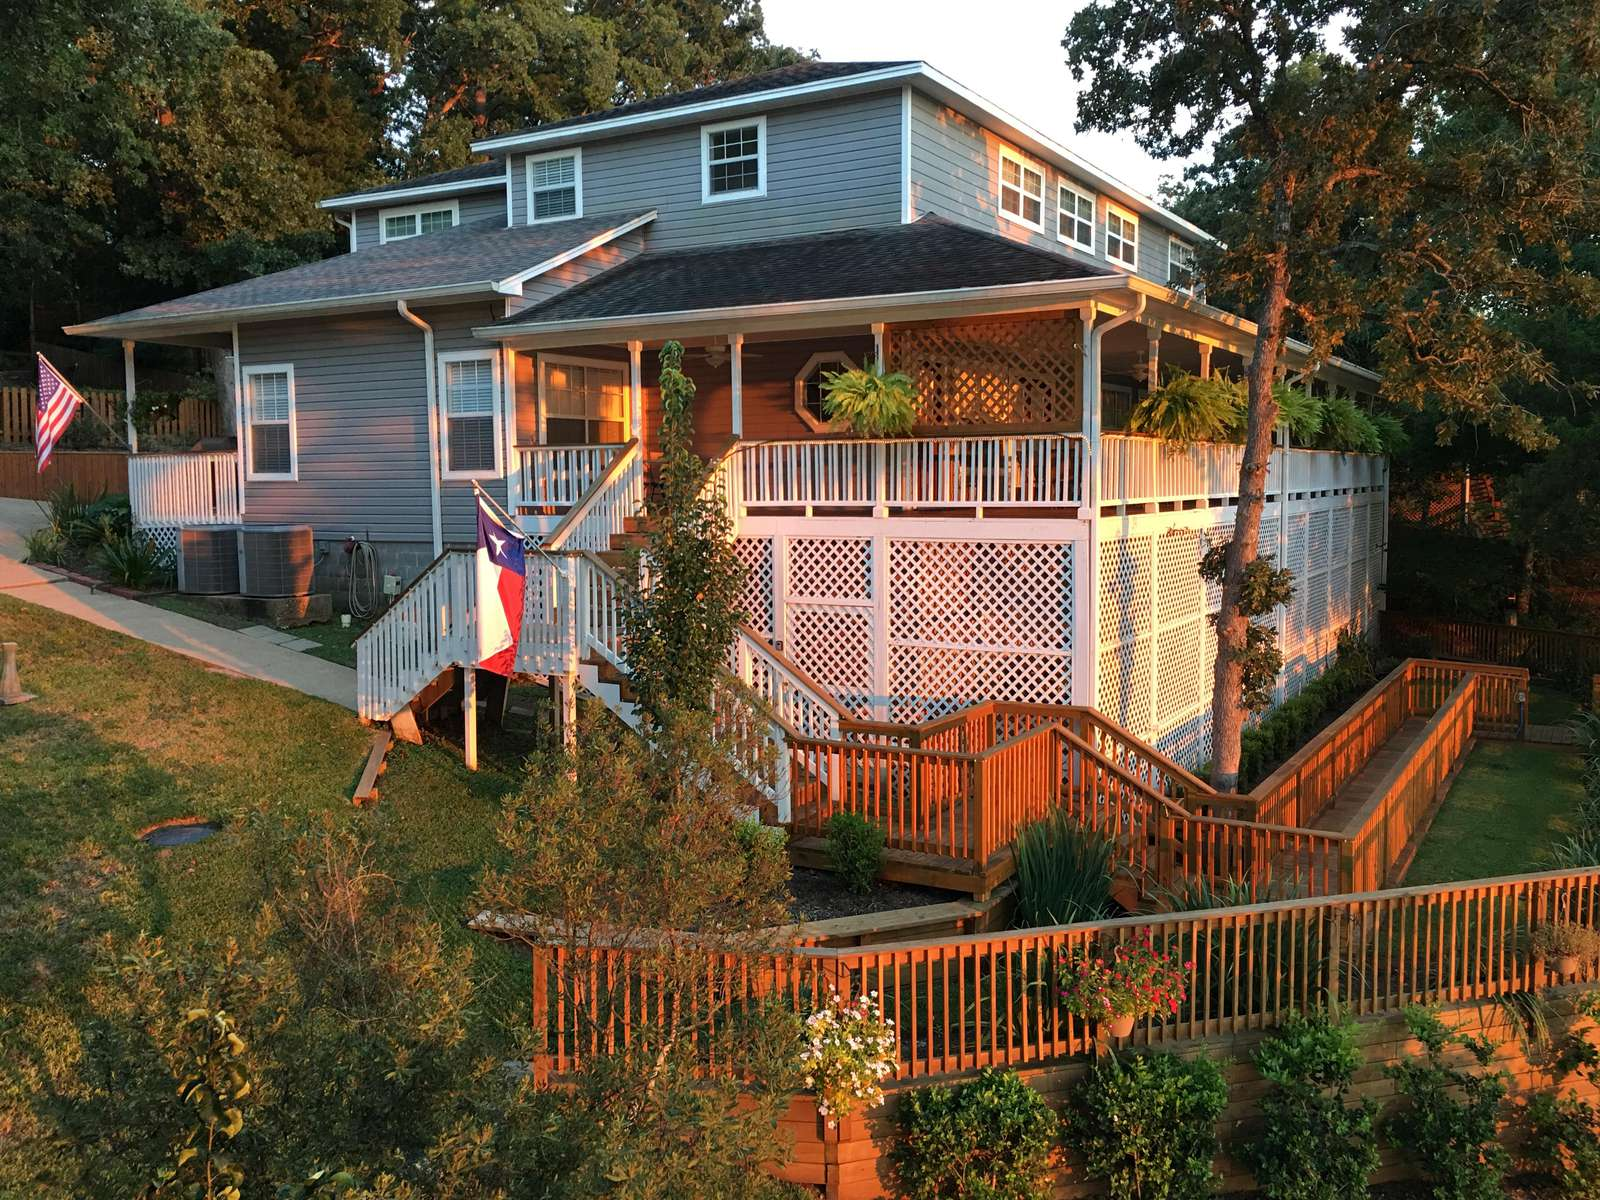 This side view of Lakeside was taken as the sun was setting. The home is shaded and faces west.